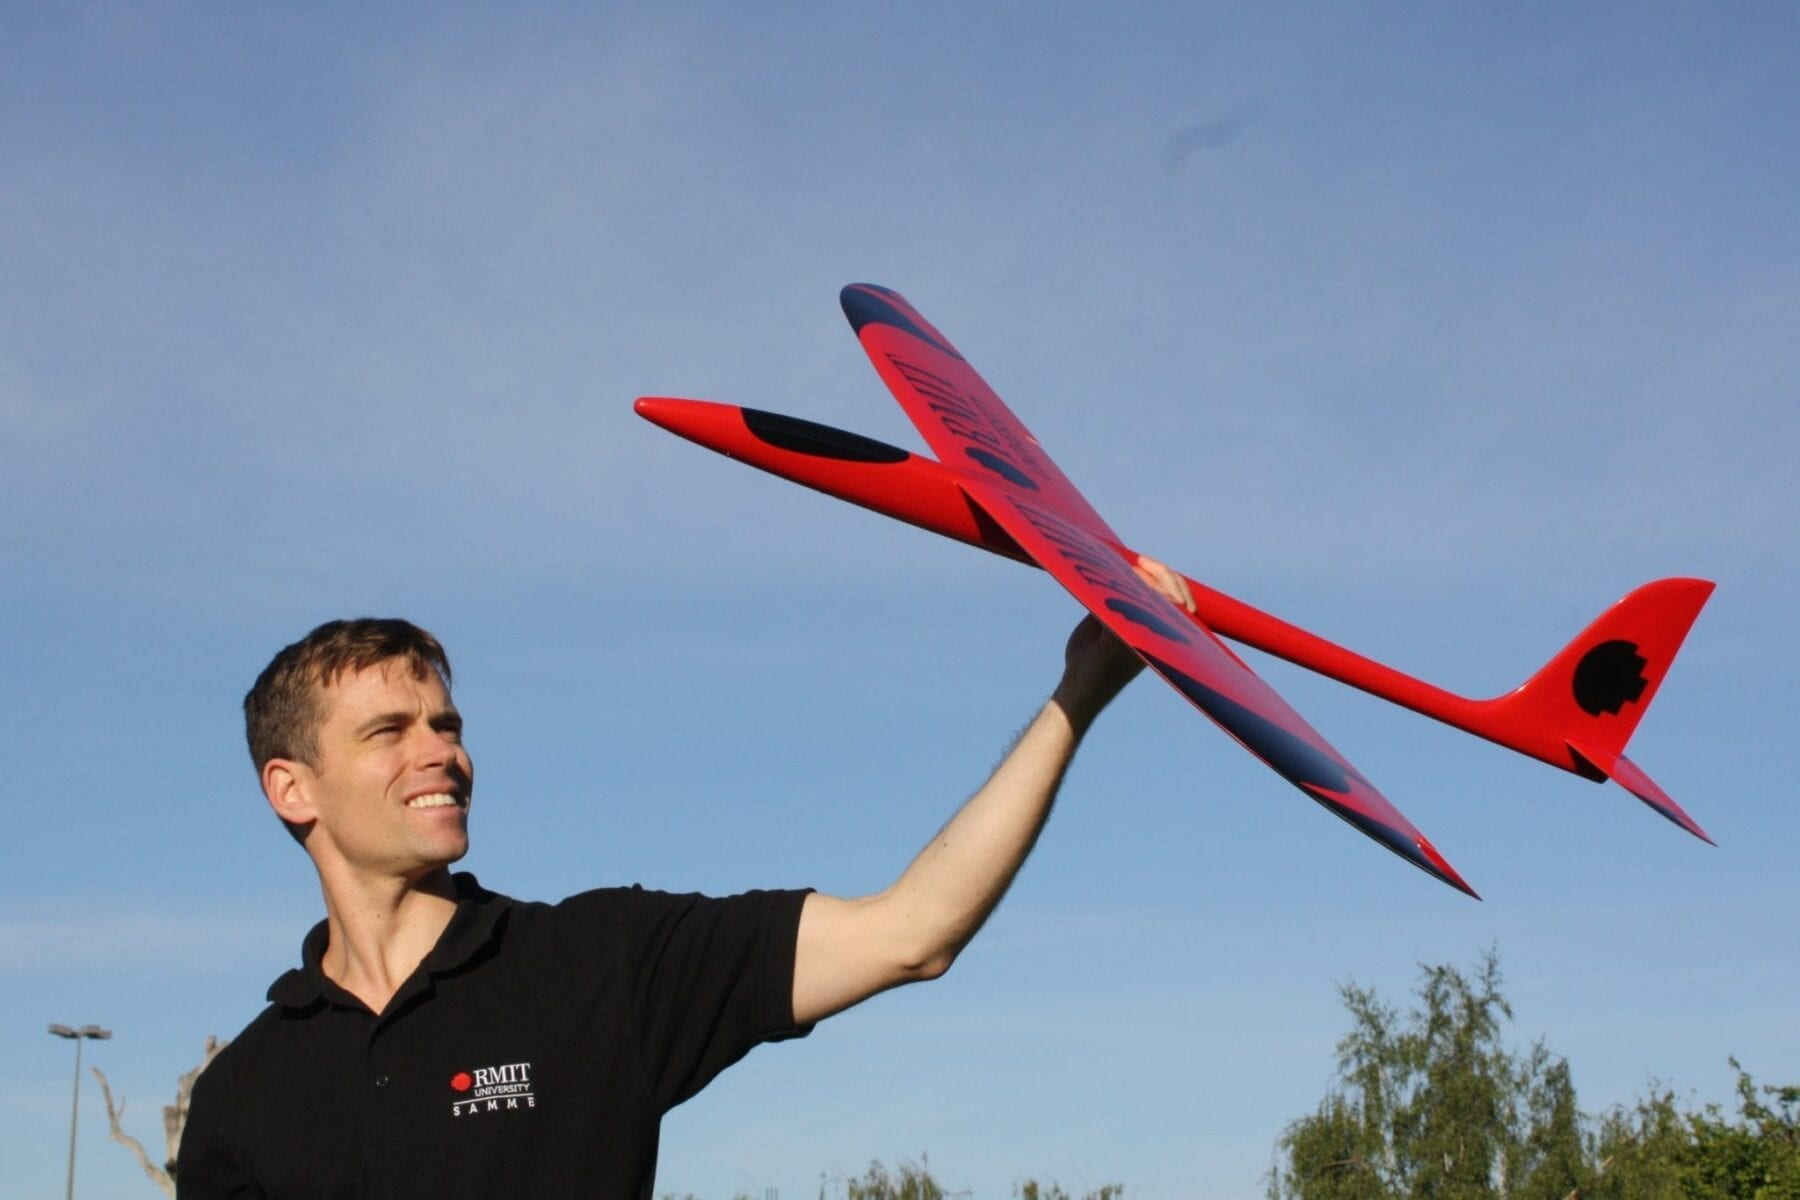 Dr Reece Clothier with a prototype of a bio-inspired unmanned aircraft, under development at RMIT University.